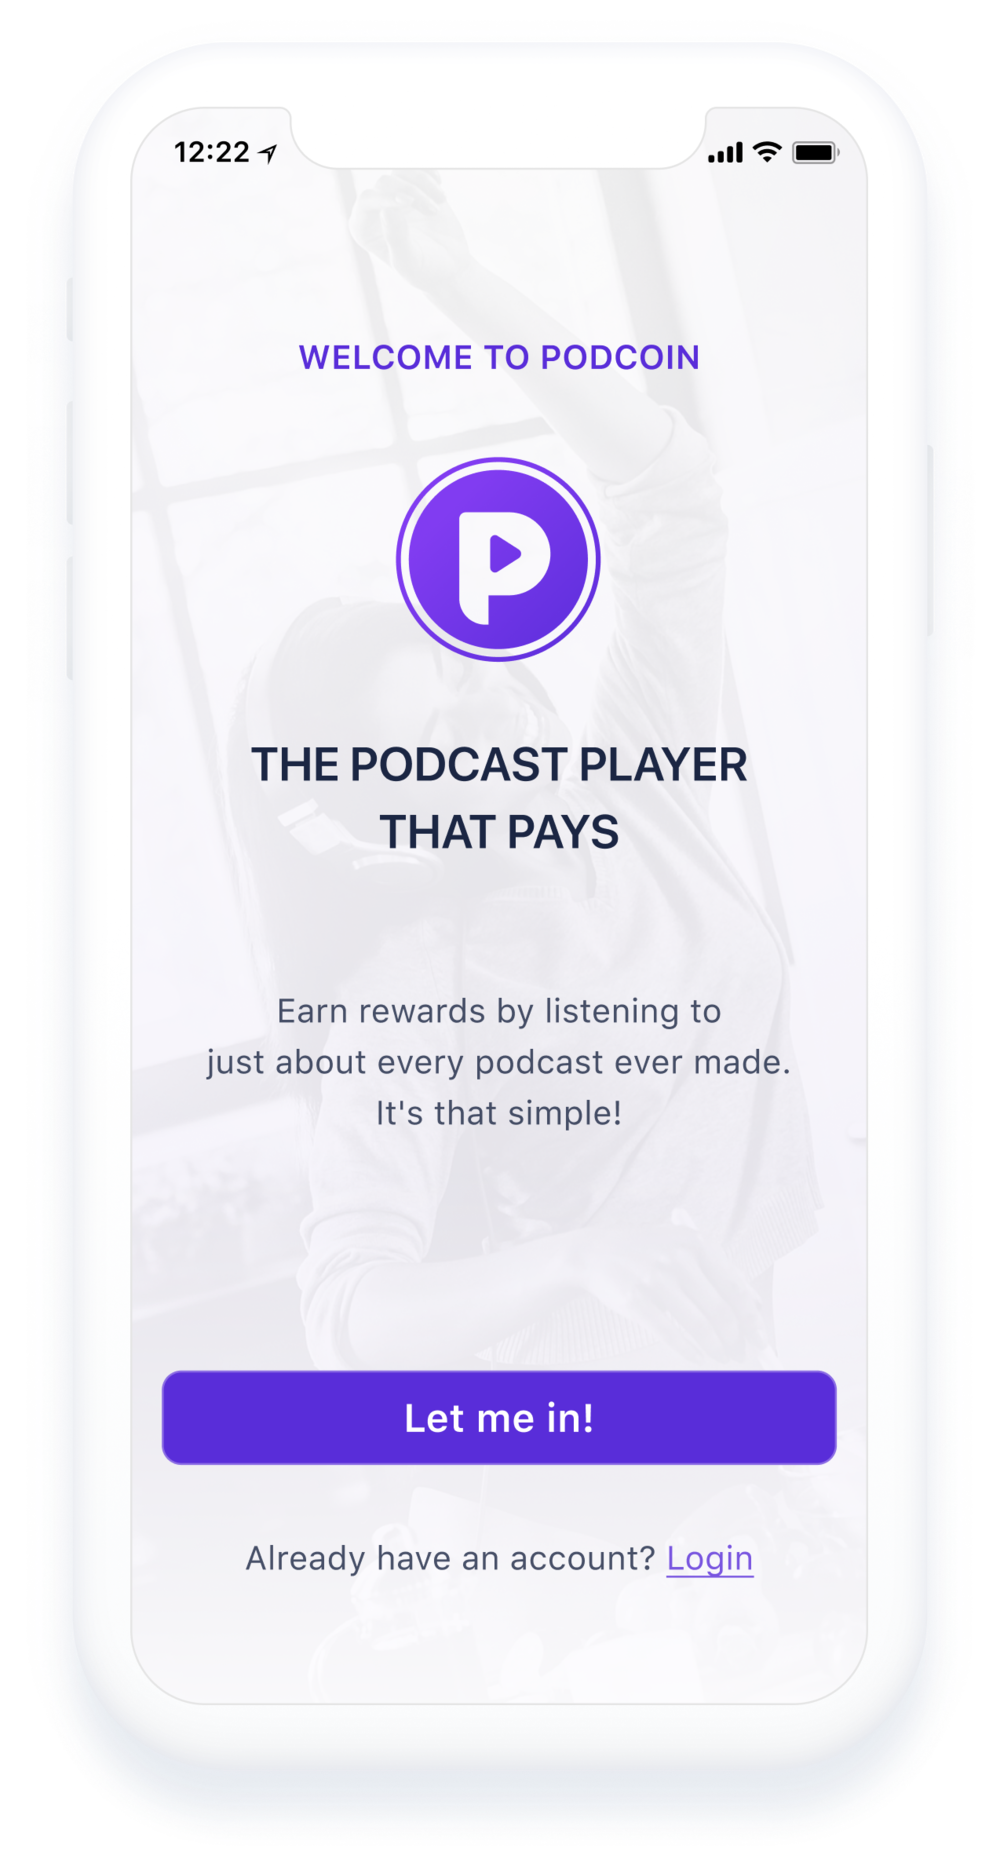 GEt paid to listen! - Earn rewards by listening to just about every podcast ever made.